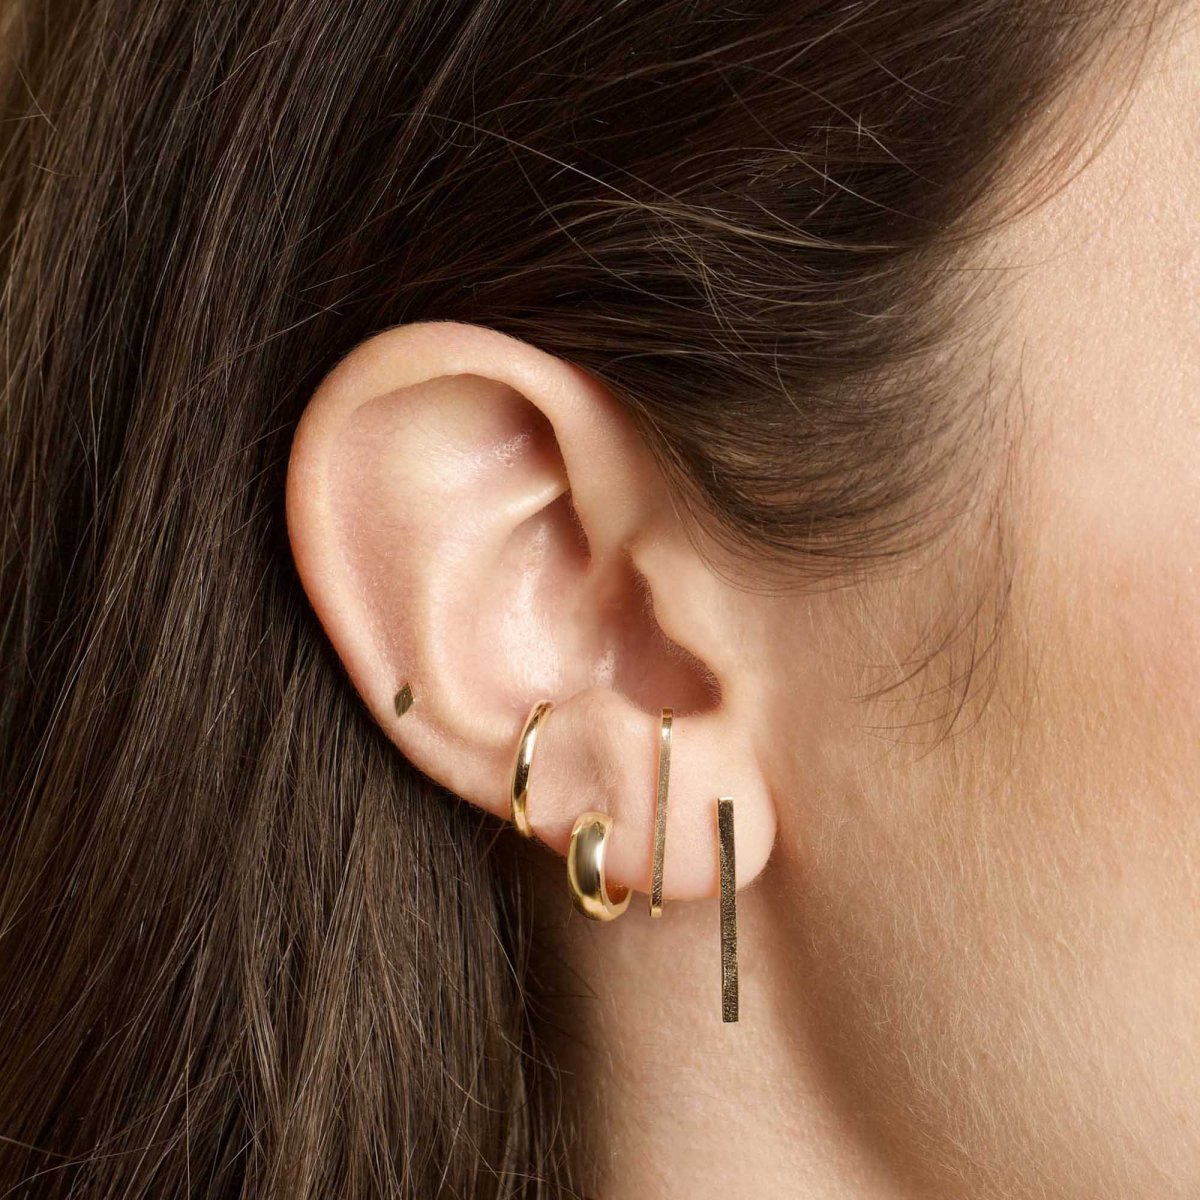 Stone & Strand Bold Gold Huggie Earrings, $150, available here. Photo: Courtesy of Stone & Strand